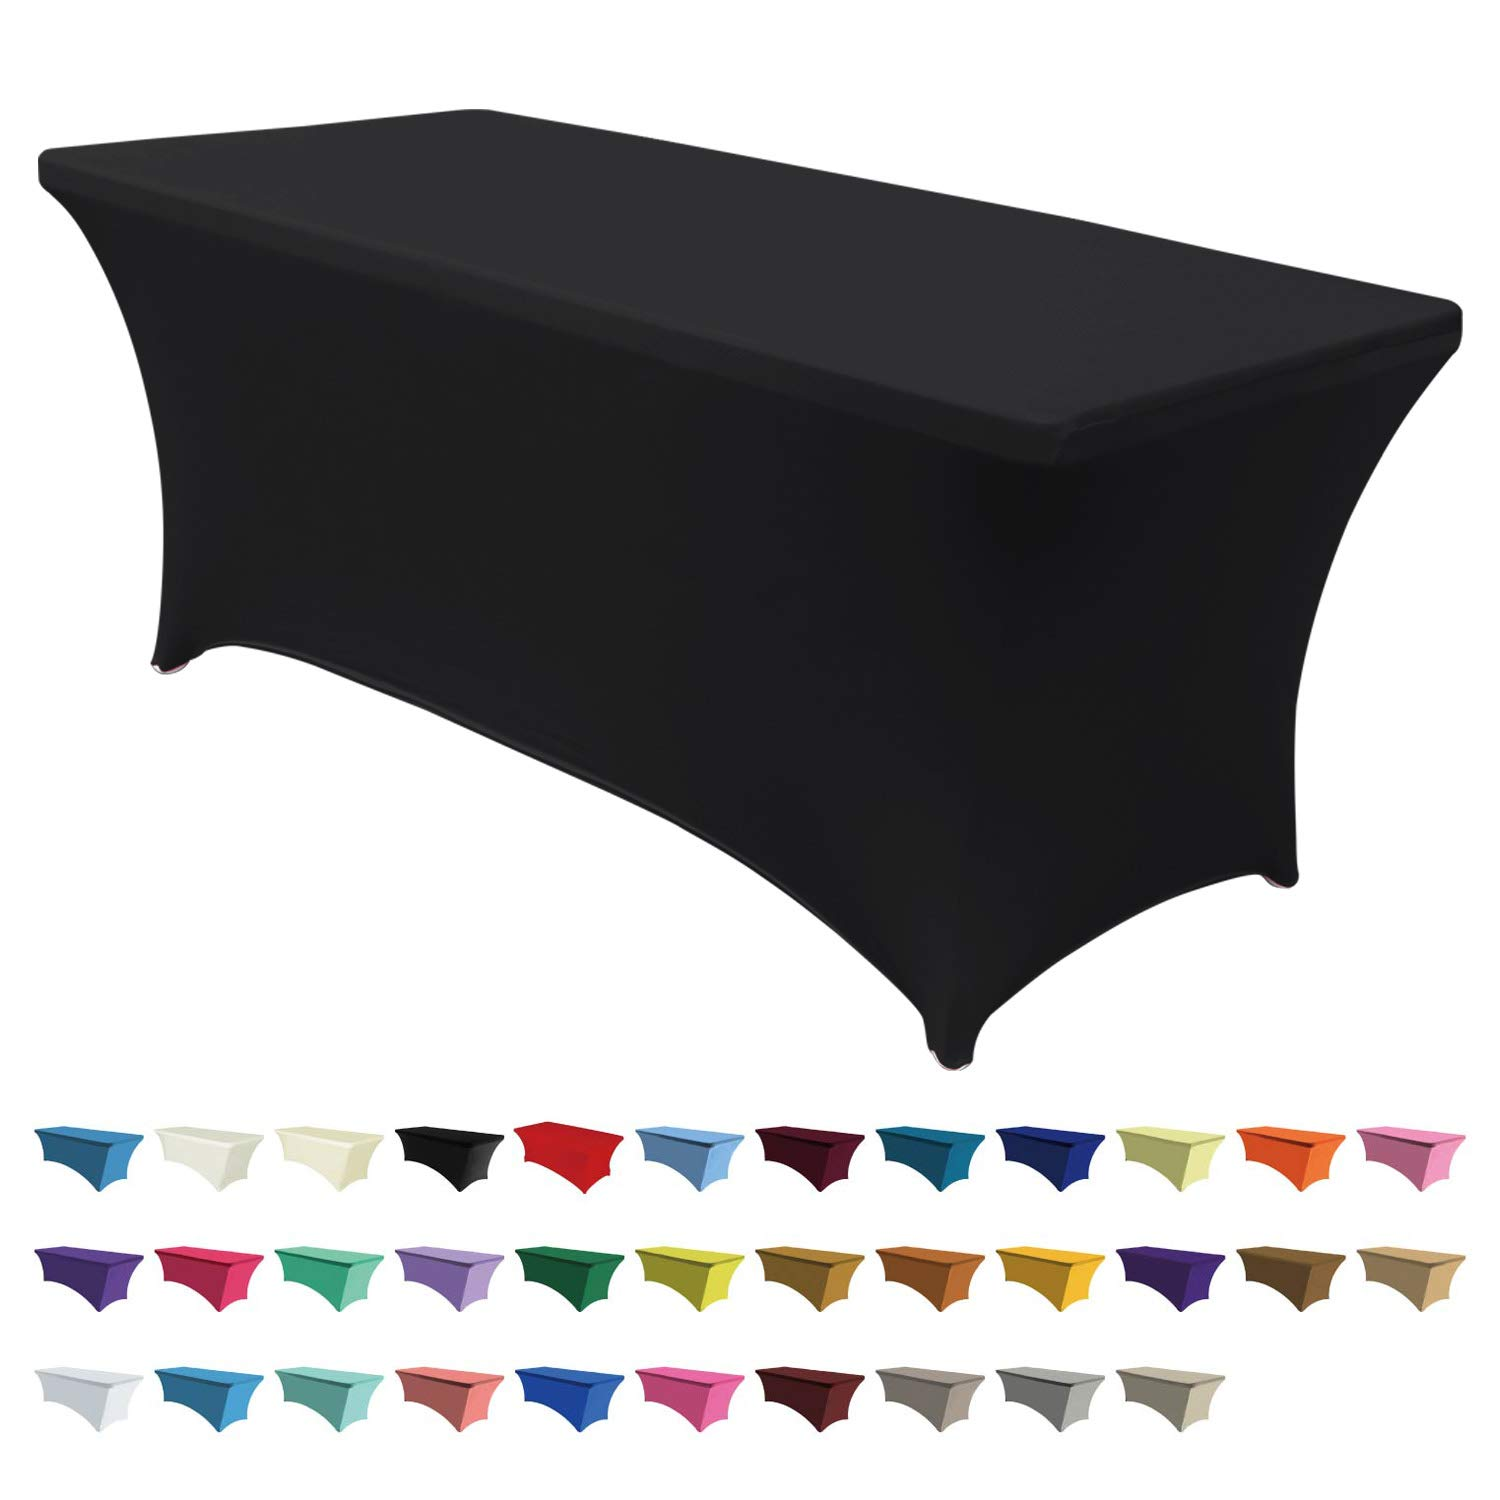 ABCCANOPY Spandex Table Cover 6 ft. Fitted 30+ Colors Polyester Tablecloth Stretch Spandex Table Cover-Table Toppers (Black) by ABCCANOPY